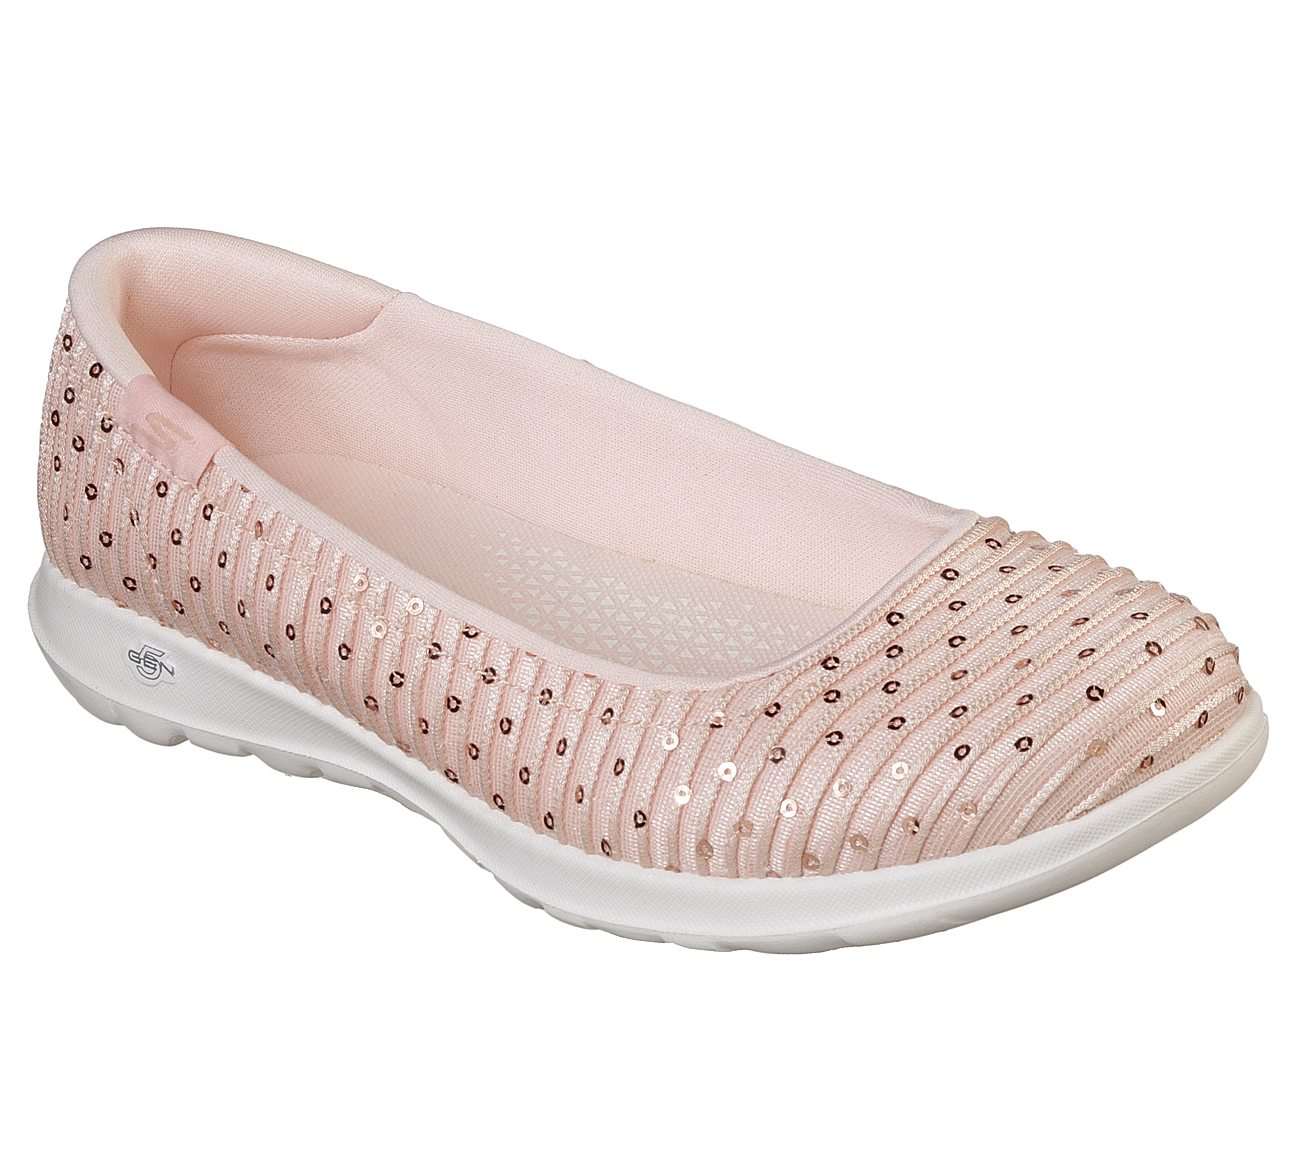 Skechers GOwalk Lite - Starlight